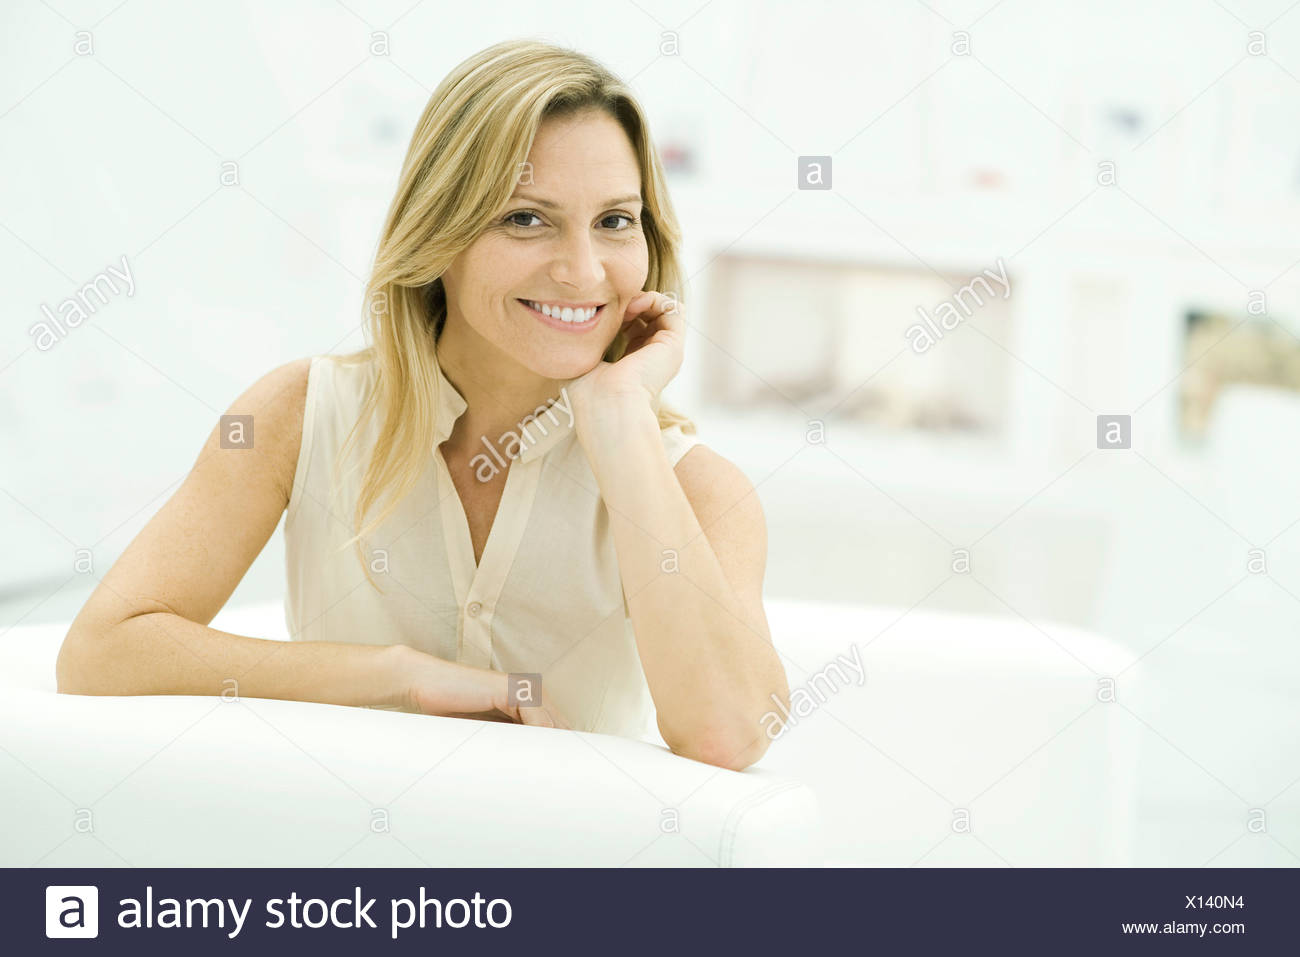 Woman leaning on elbow, smiling at camera, portrait - Stock Image